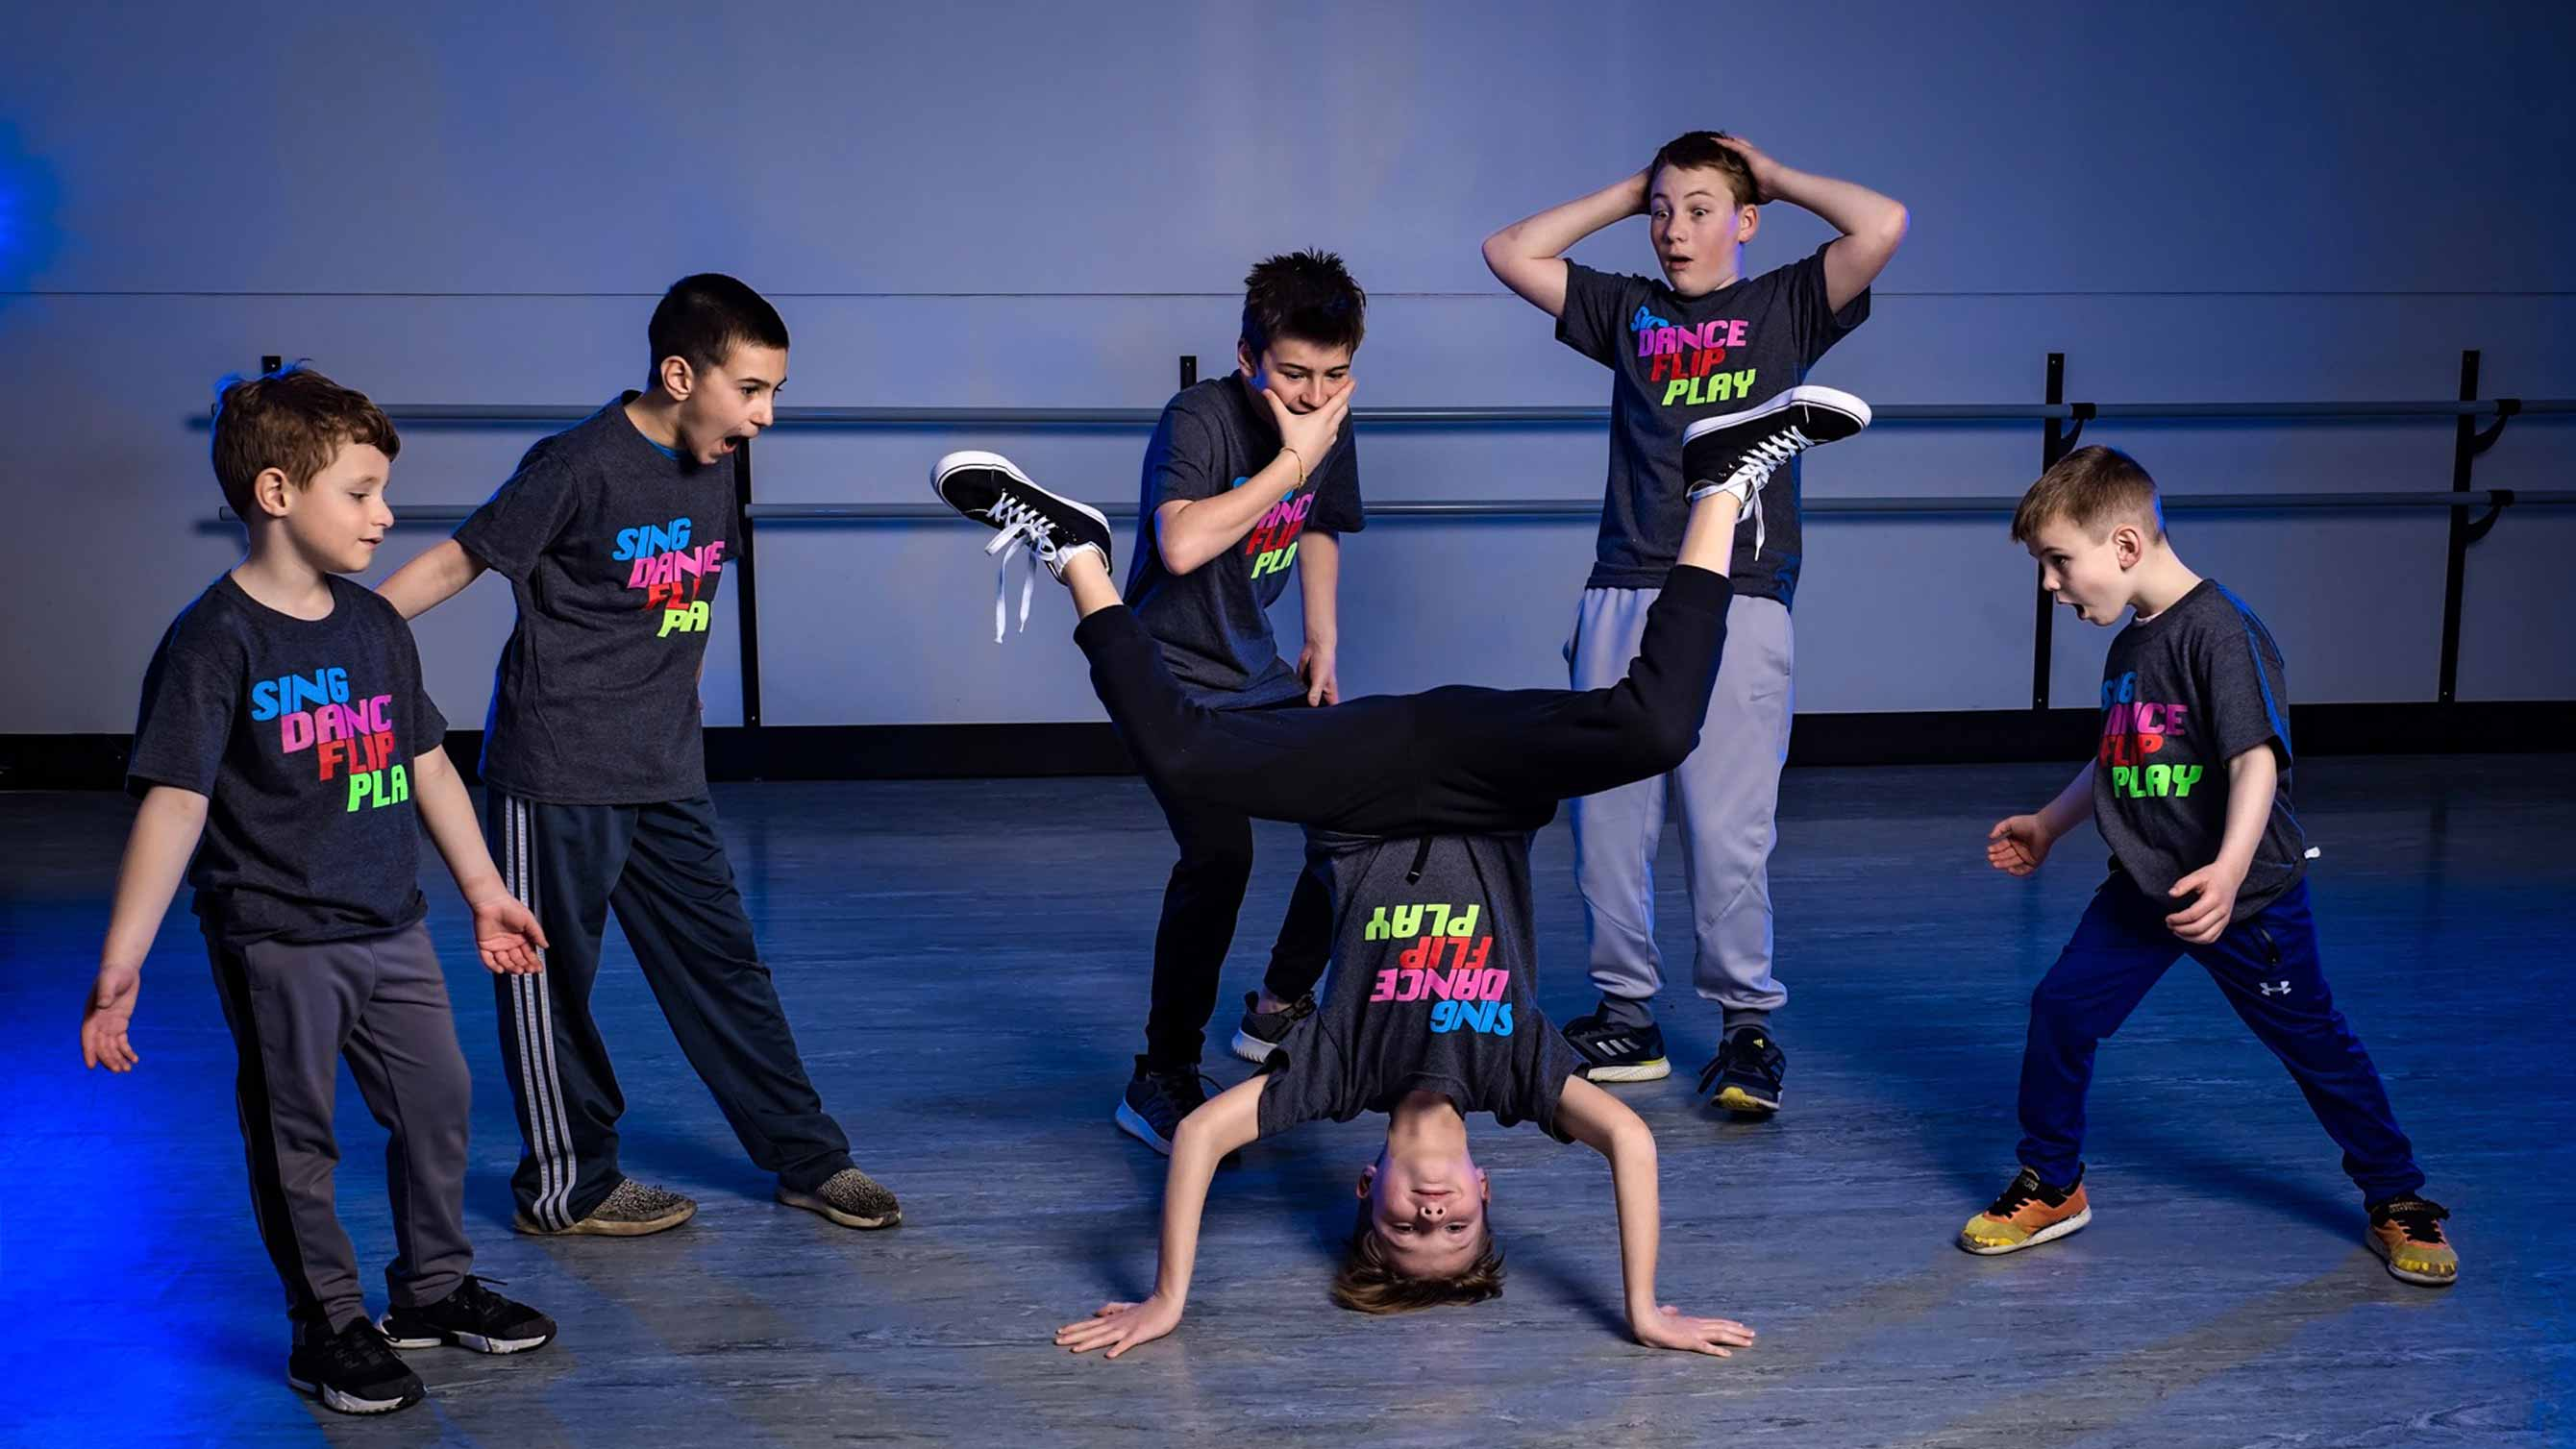 Photo of boys in hip hop class